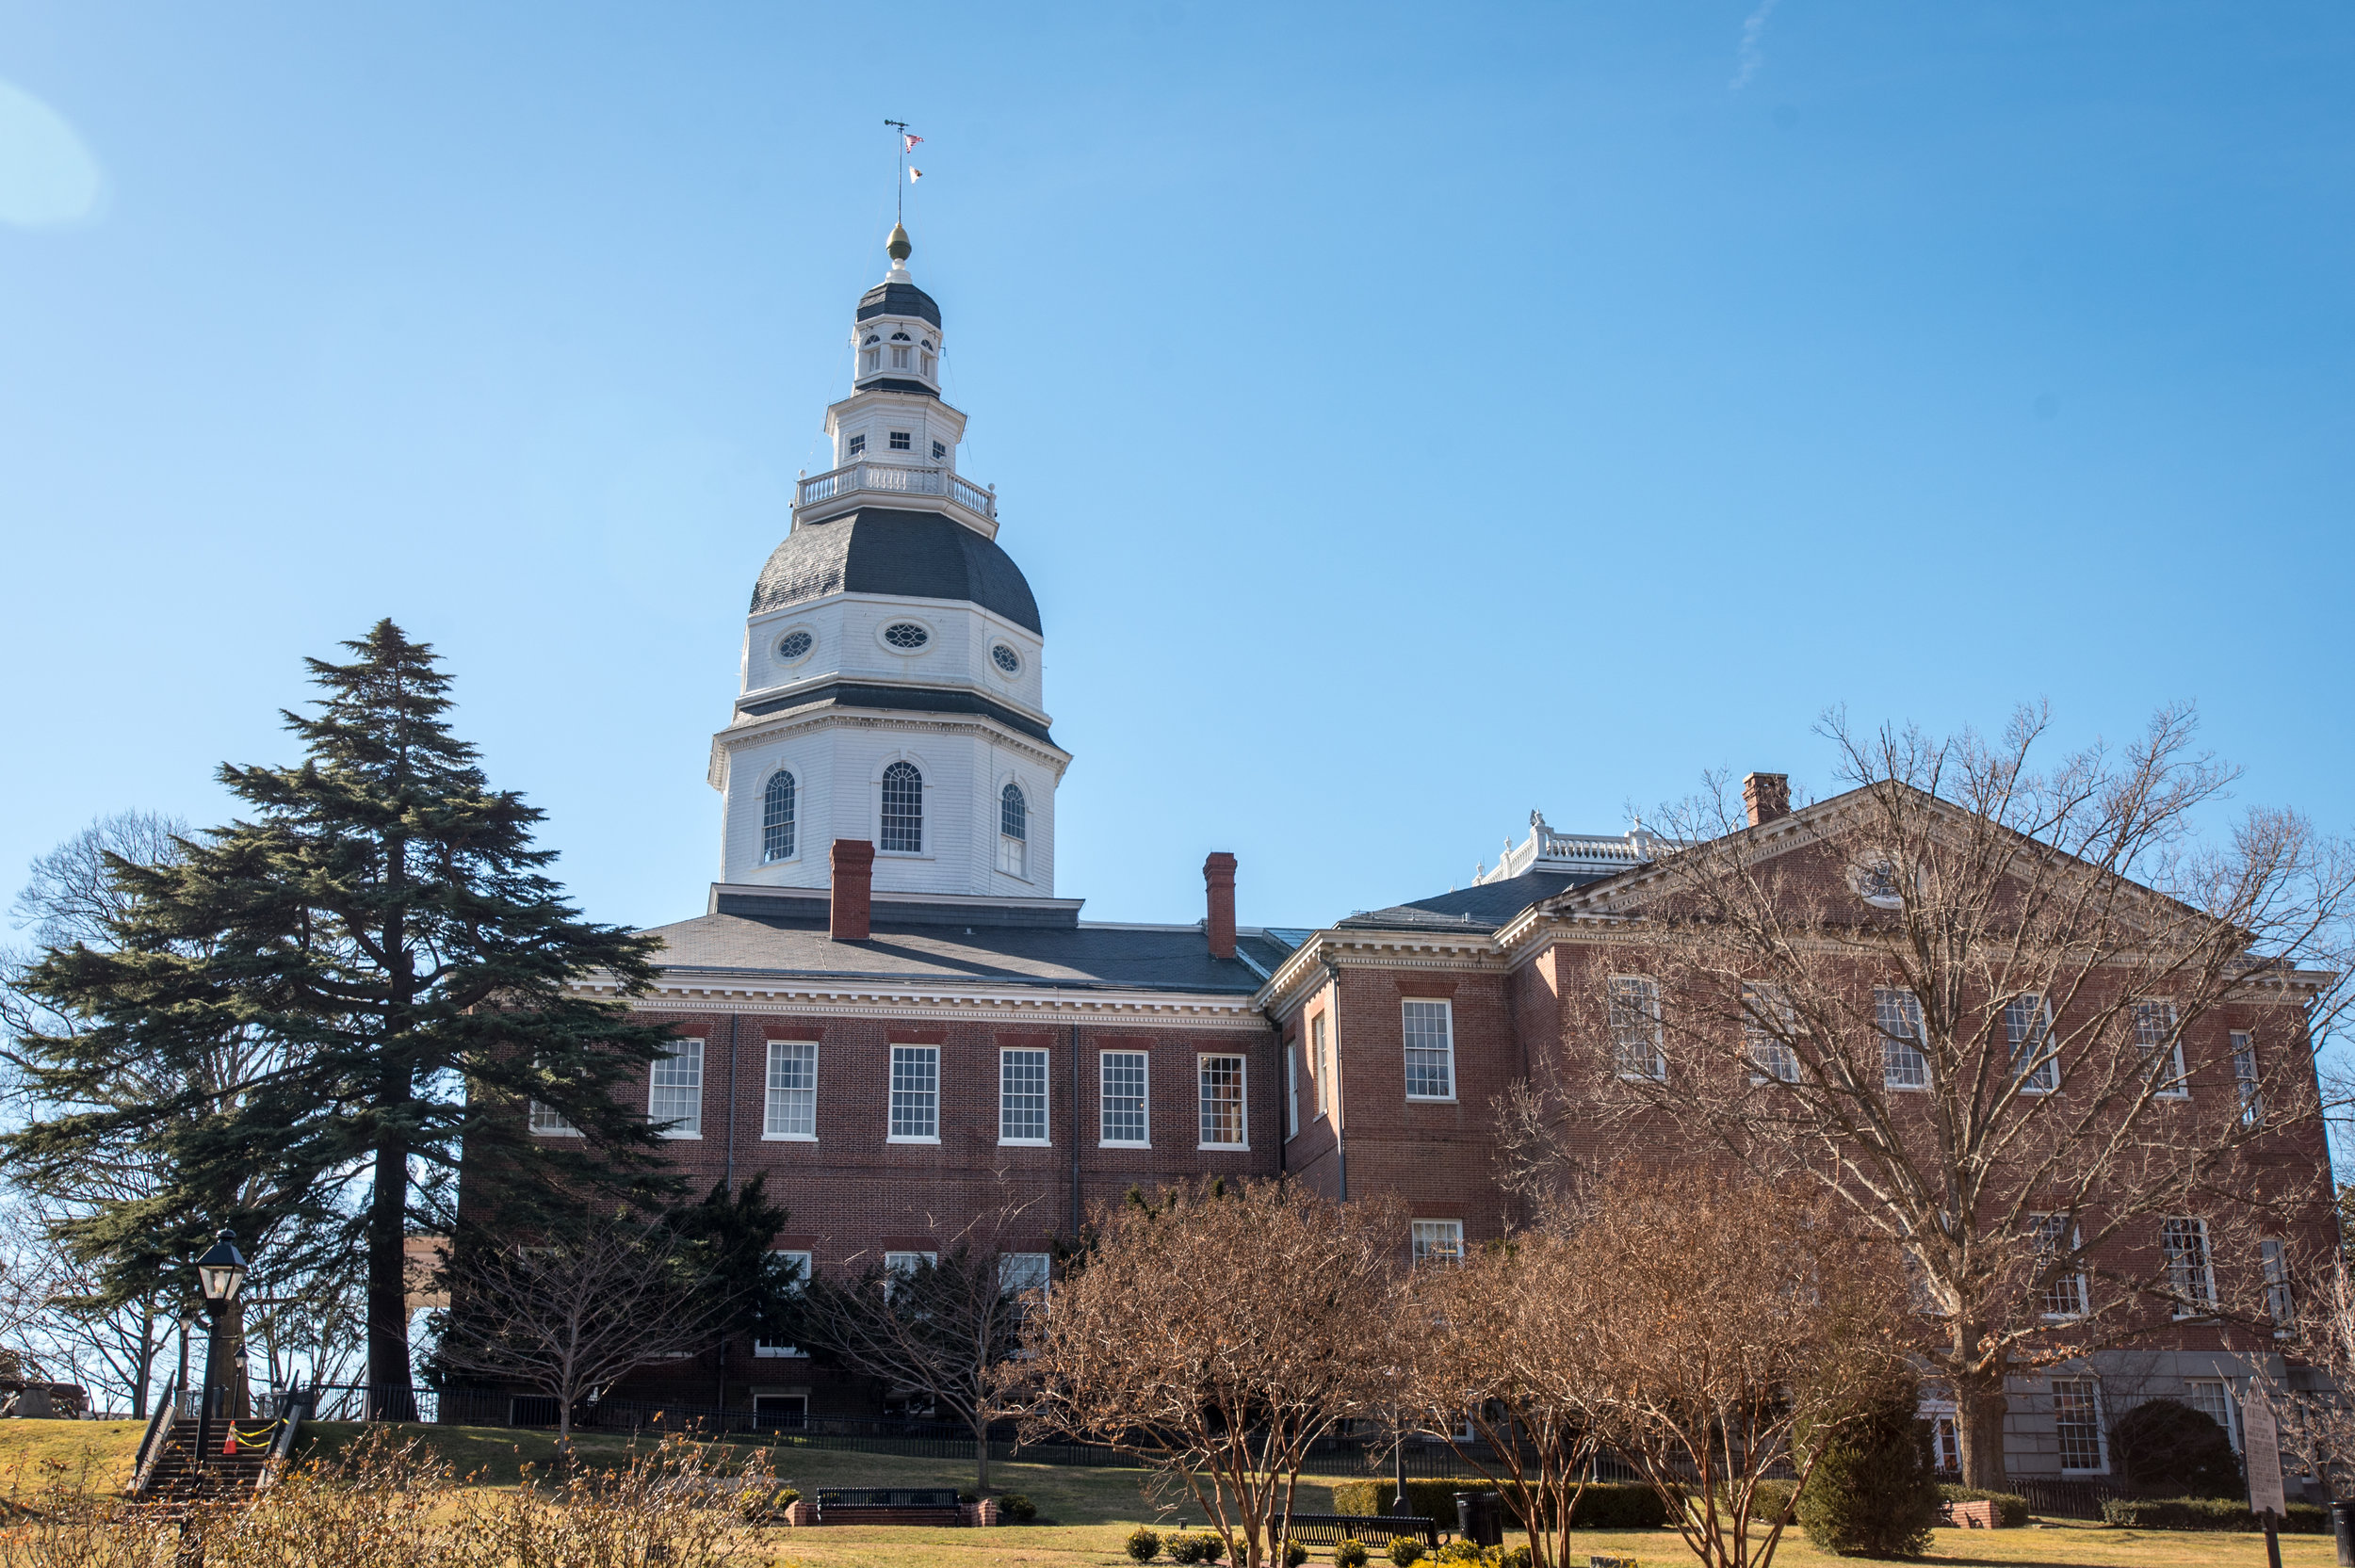 Photo Credit Edwin Remsberg. This is an image of the Maryland State House.